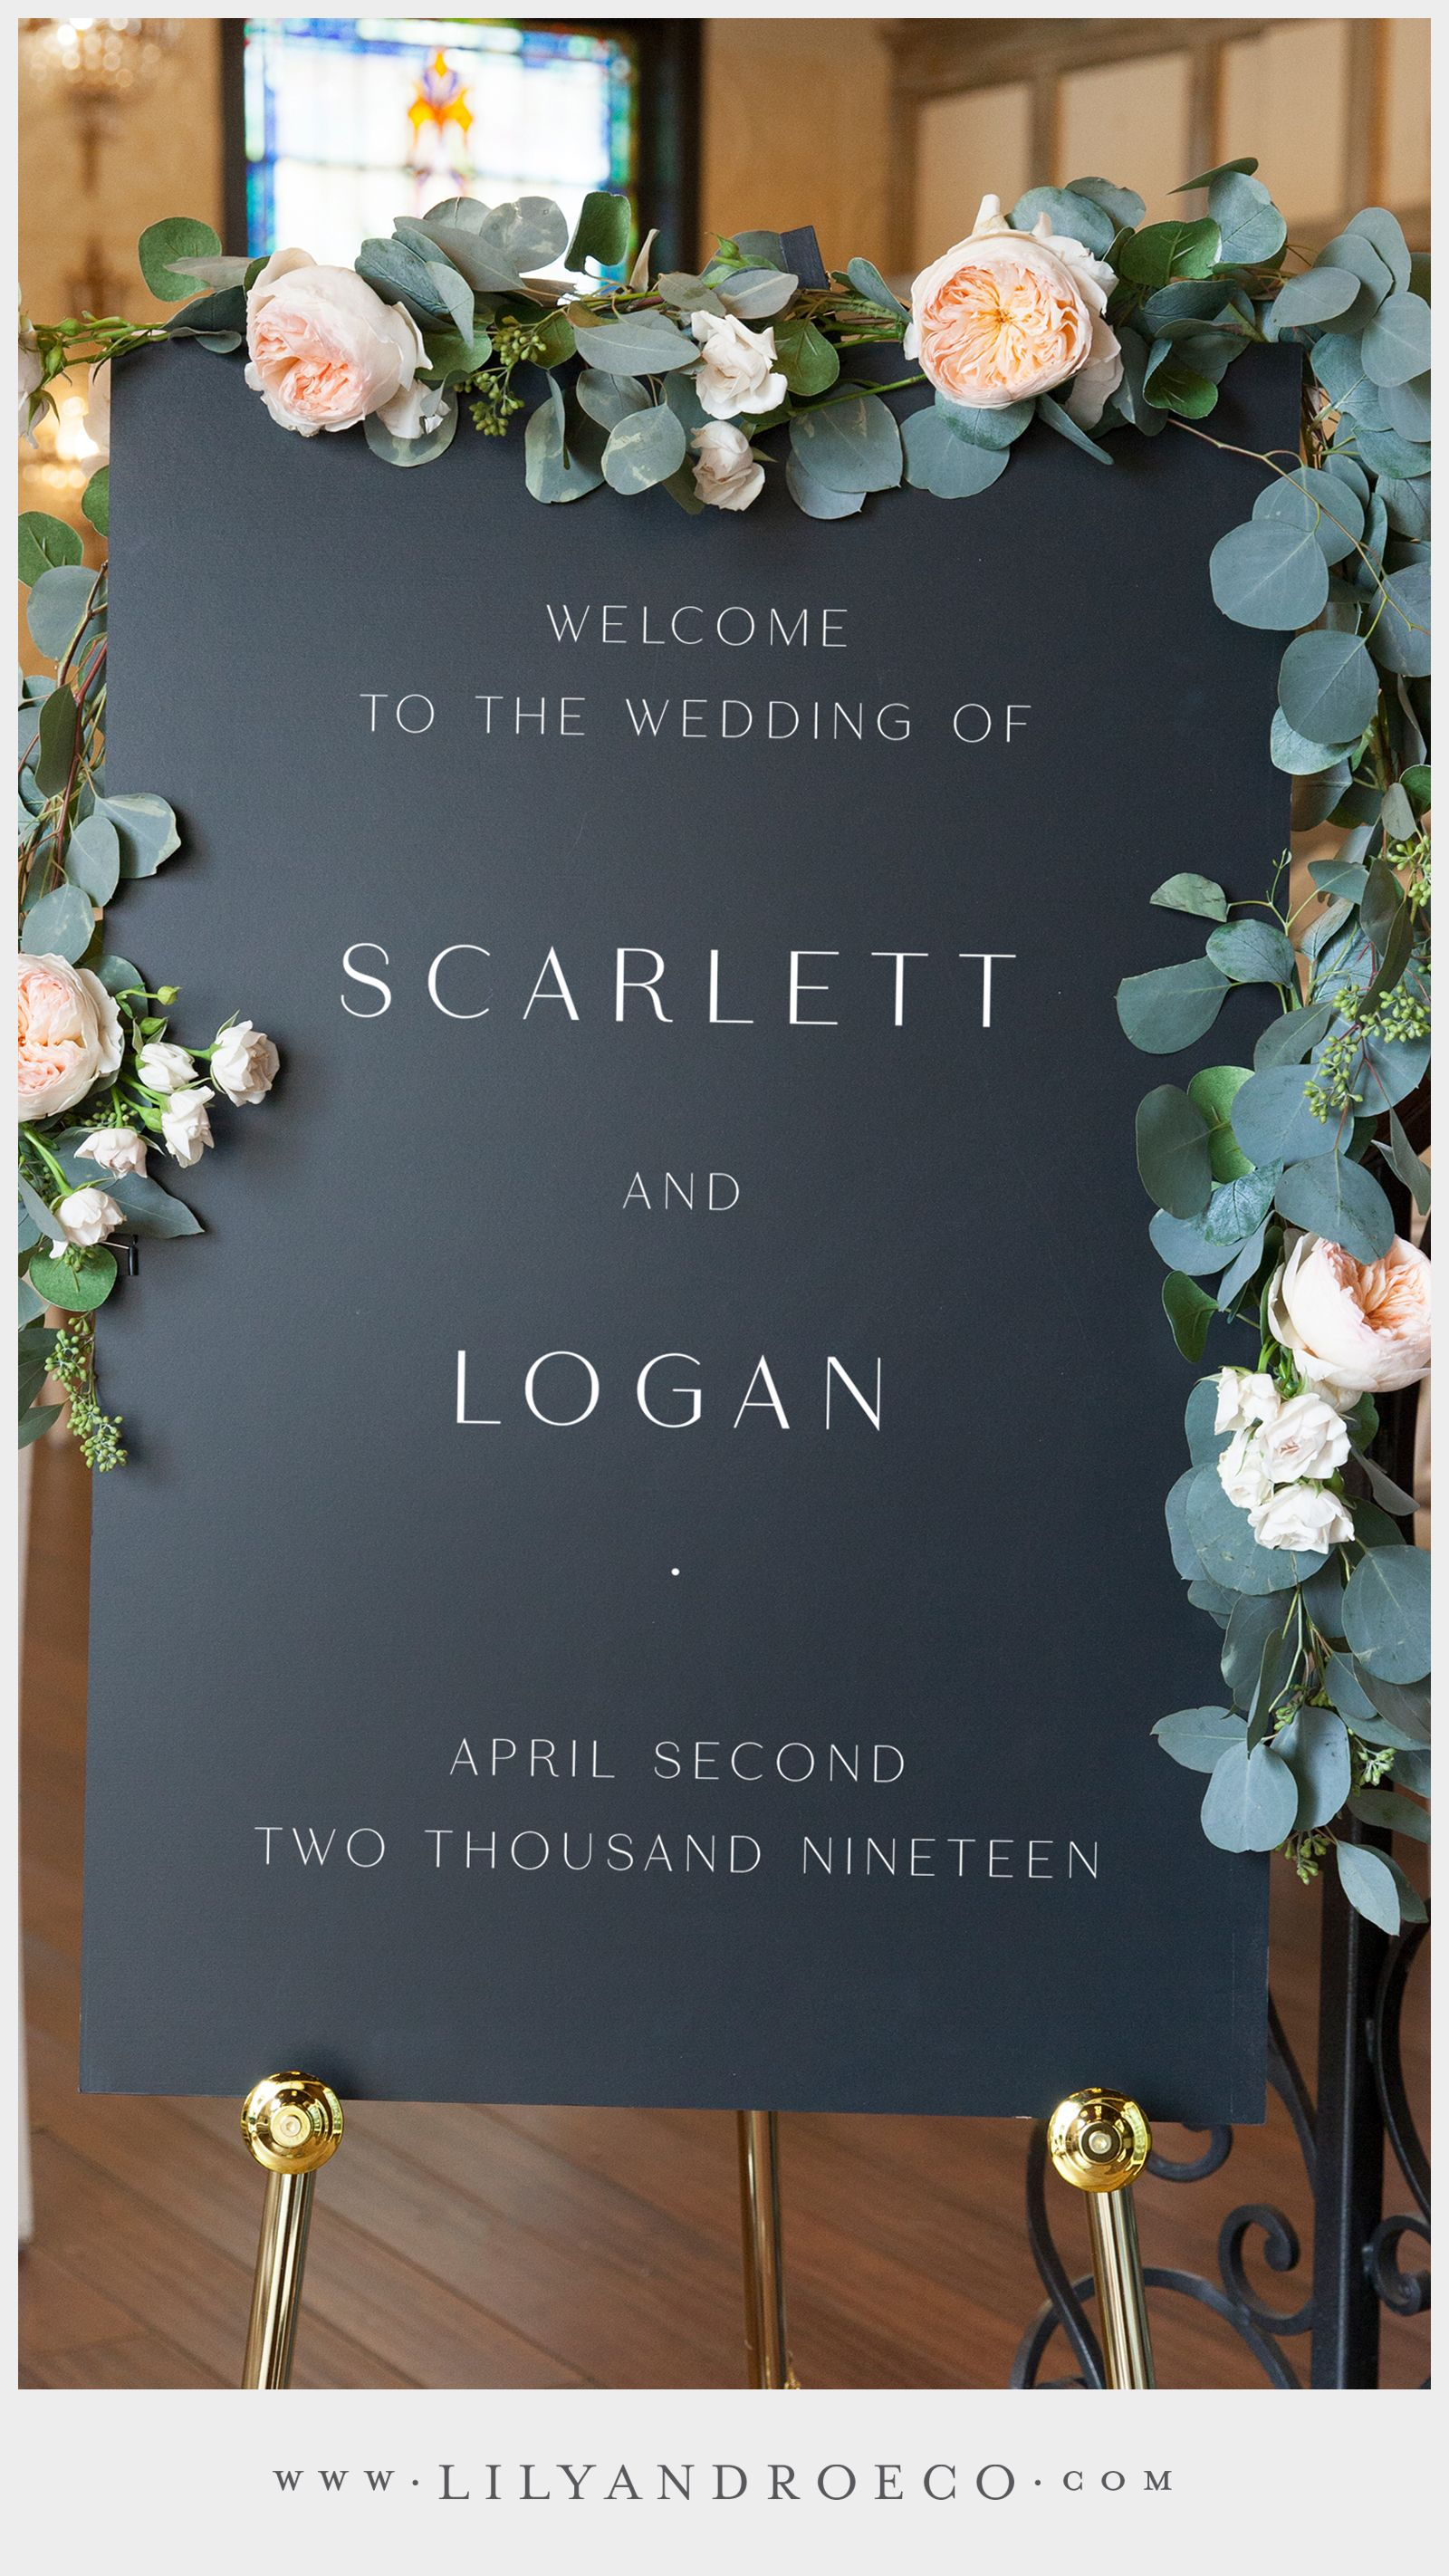 Personalized Wedding Signs for Ceremonies & Receptions #weddingwelcomesign